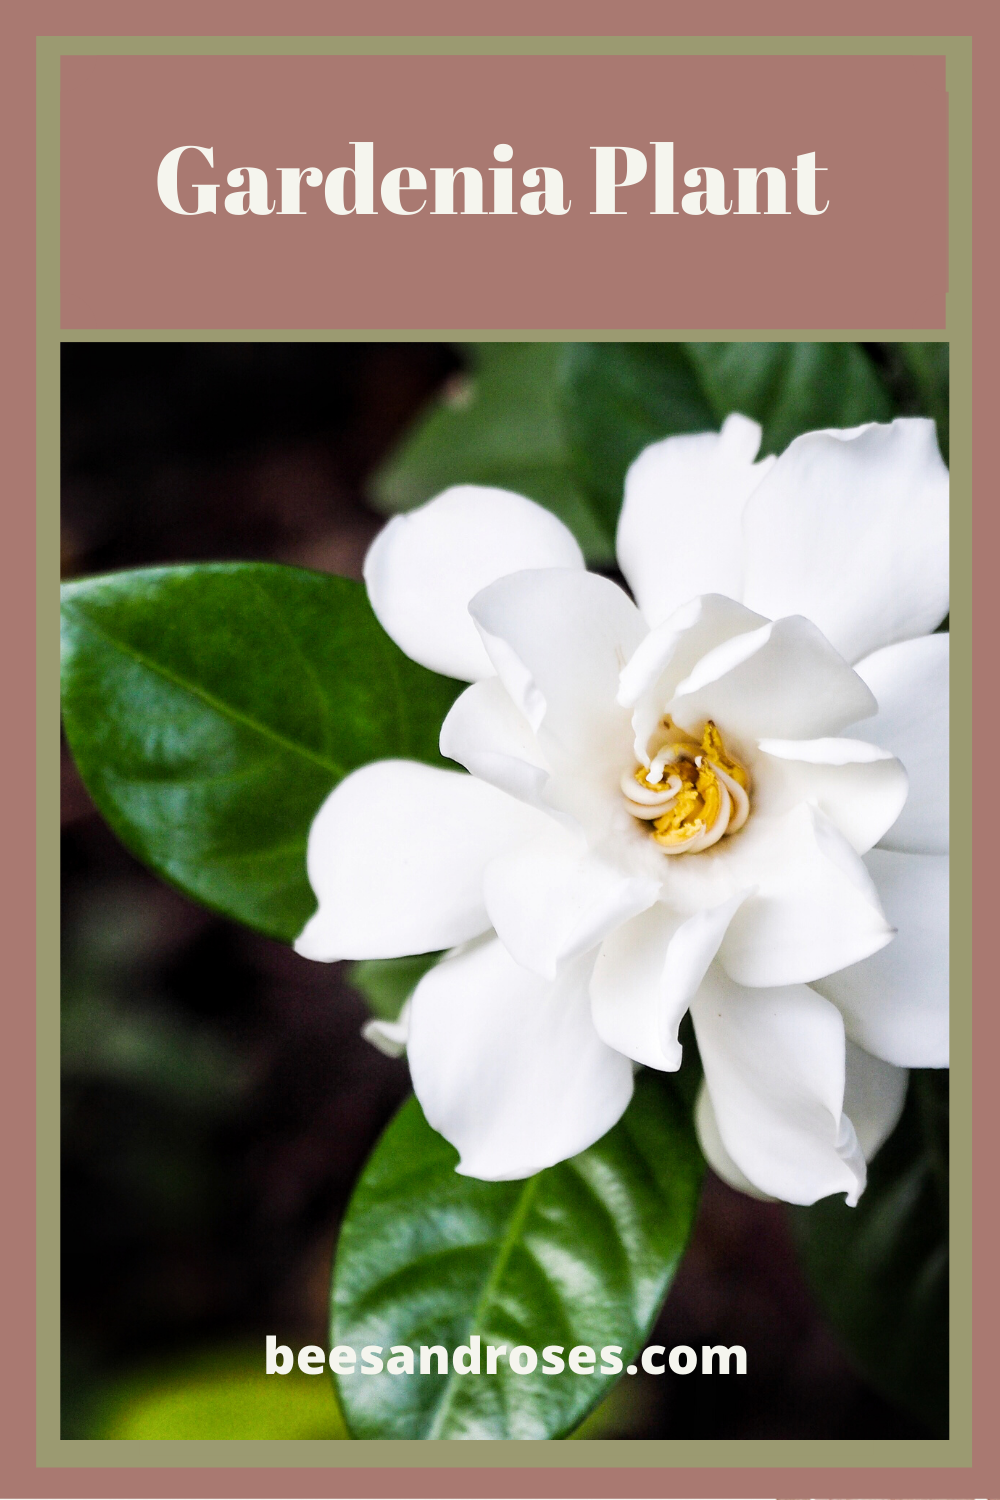 If you like fragrant flowers, the gardenia plant will make you happy. Its beautiful blooms are so heavenly smelling. The plant can be grown both indoors and outdoors. Learn how to take care of it by reading this post. #beesandrosesblog #gardenia #gardeniaplant